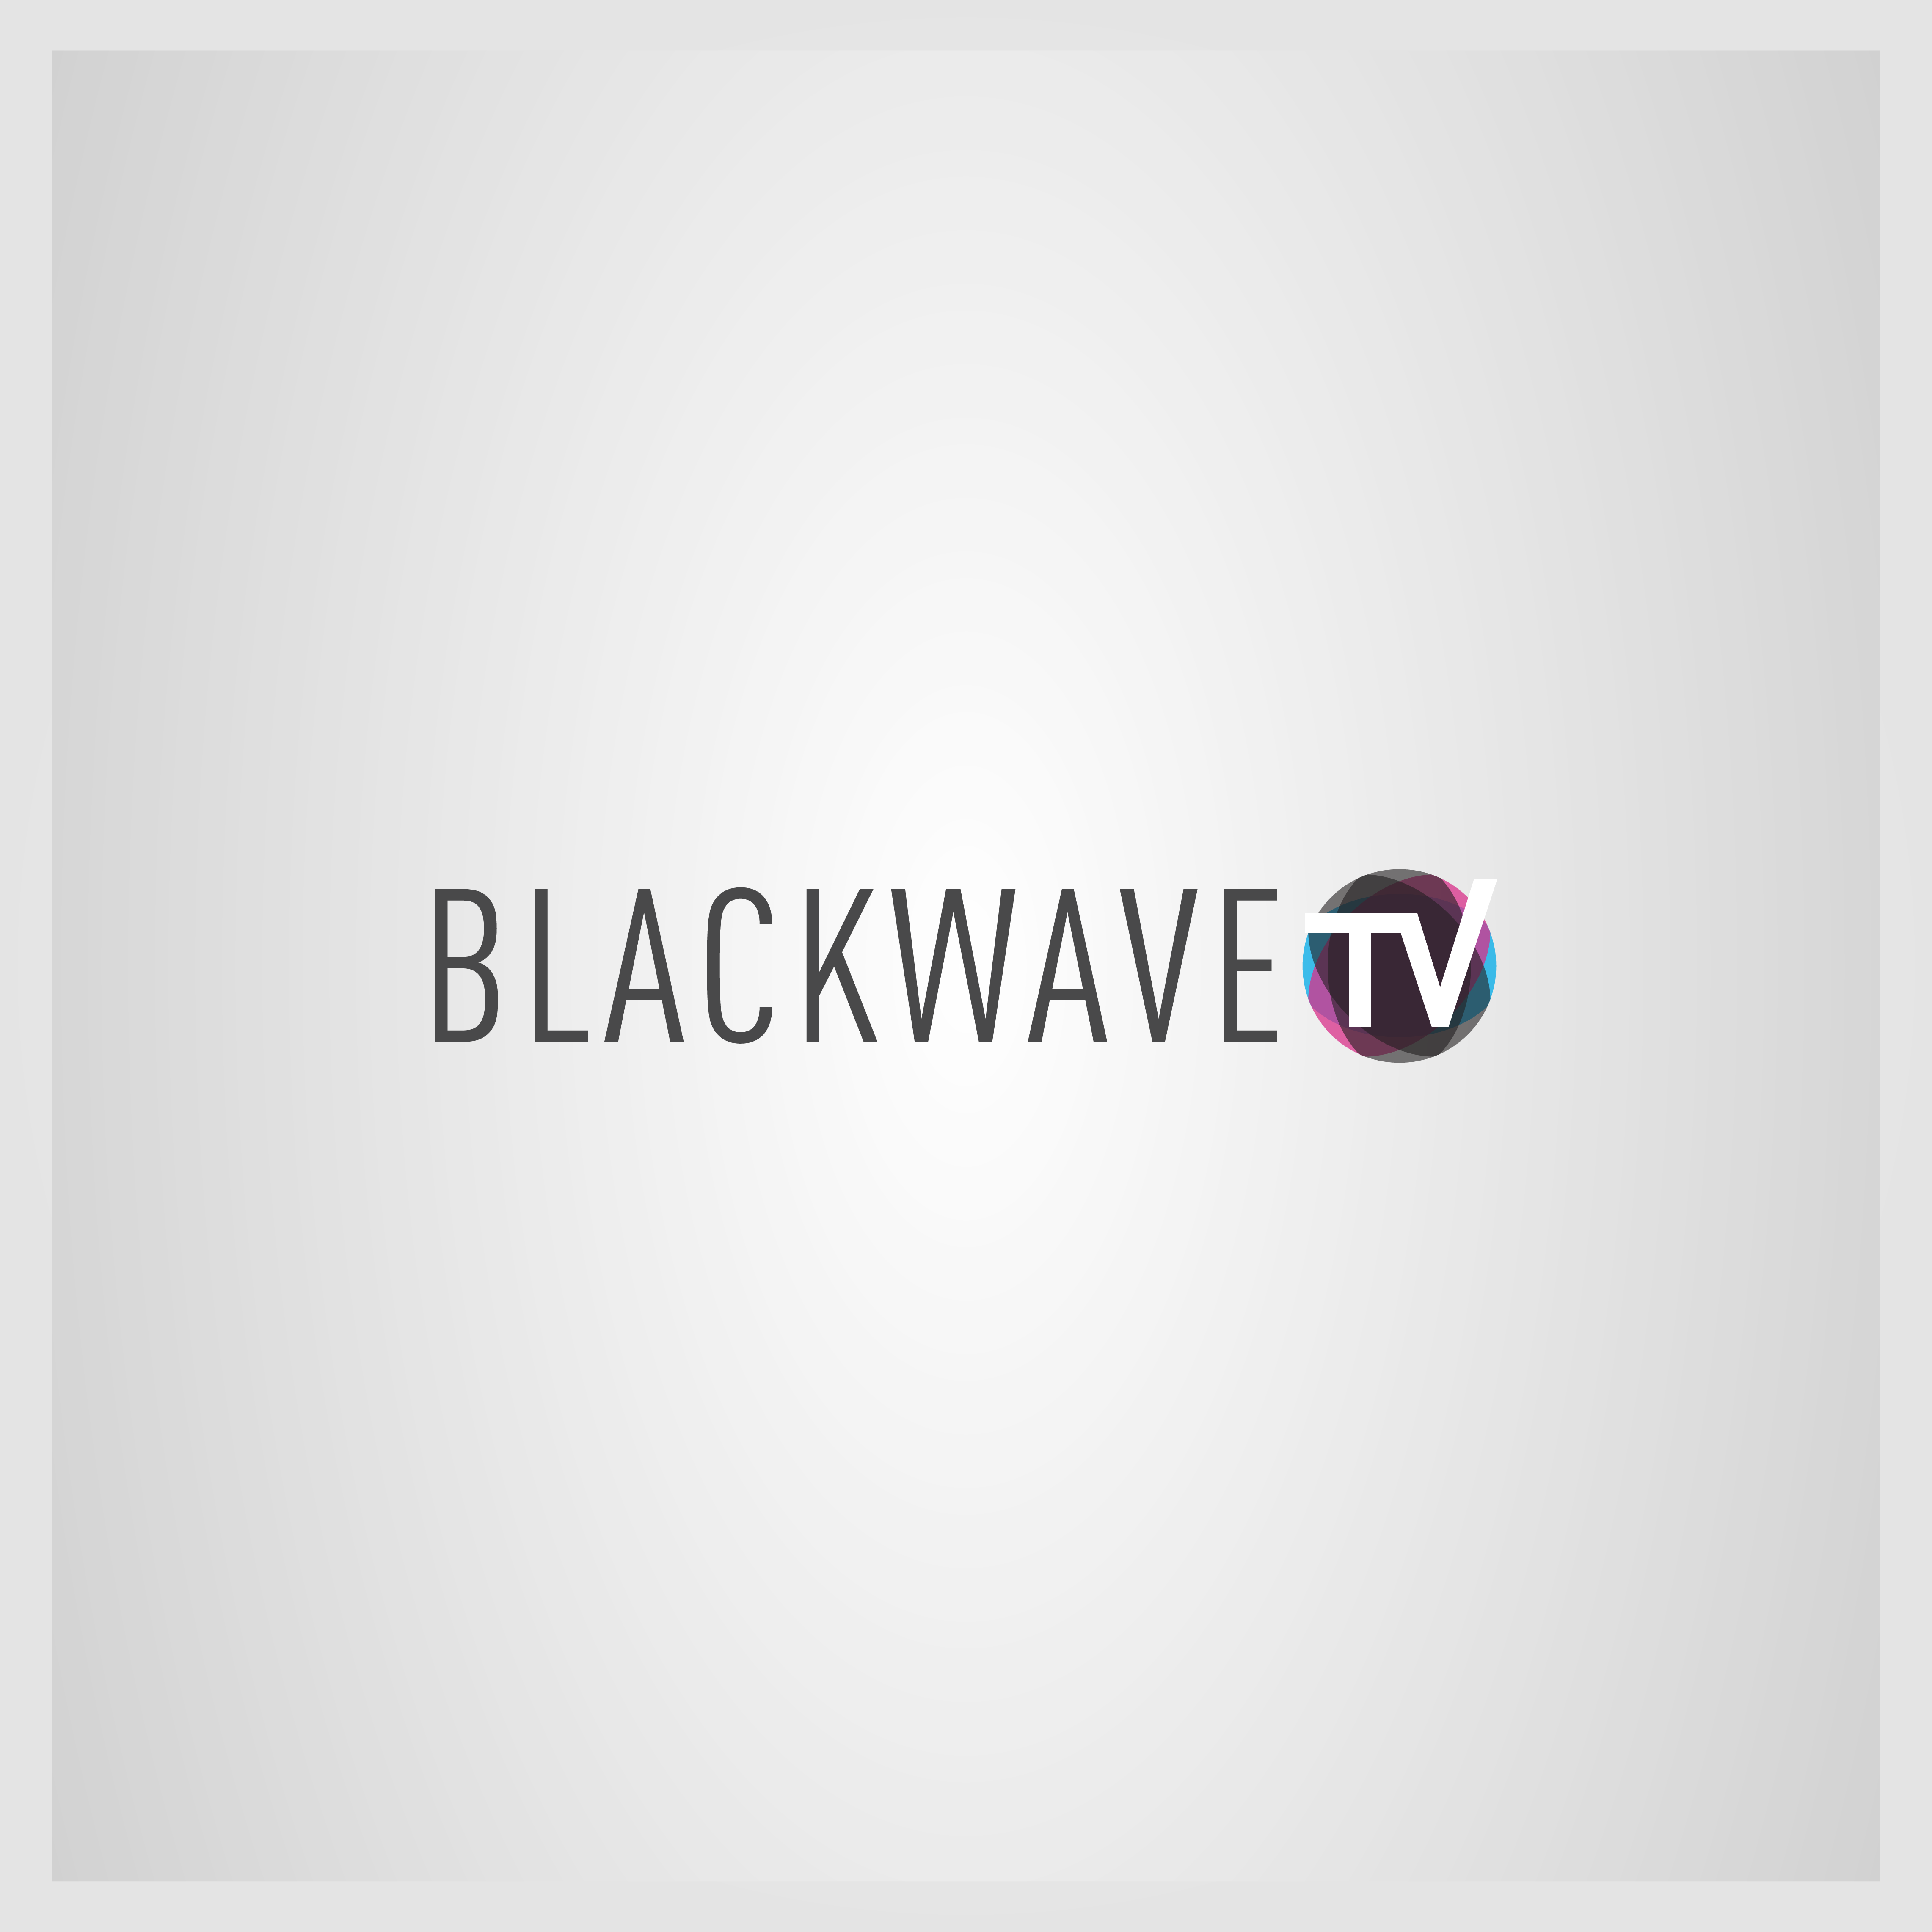 Logo treatment reading BLACKWAVE TV with TV being encircled in a faceted gem